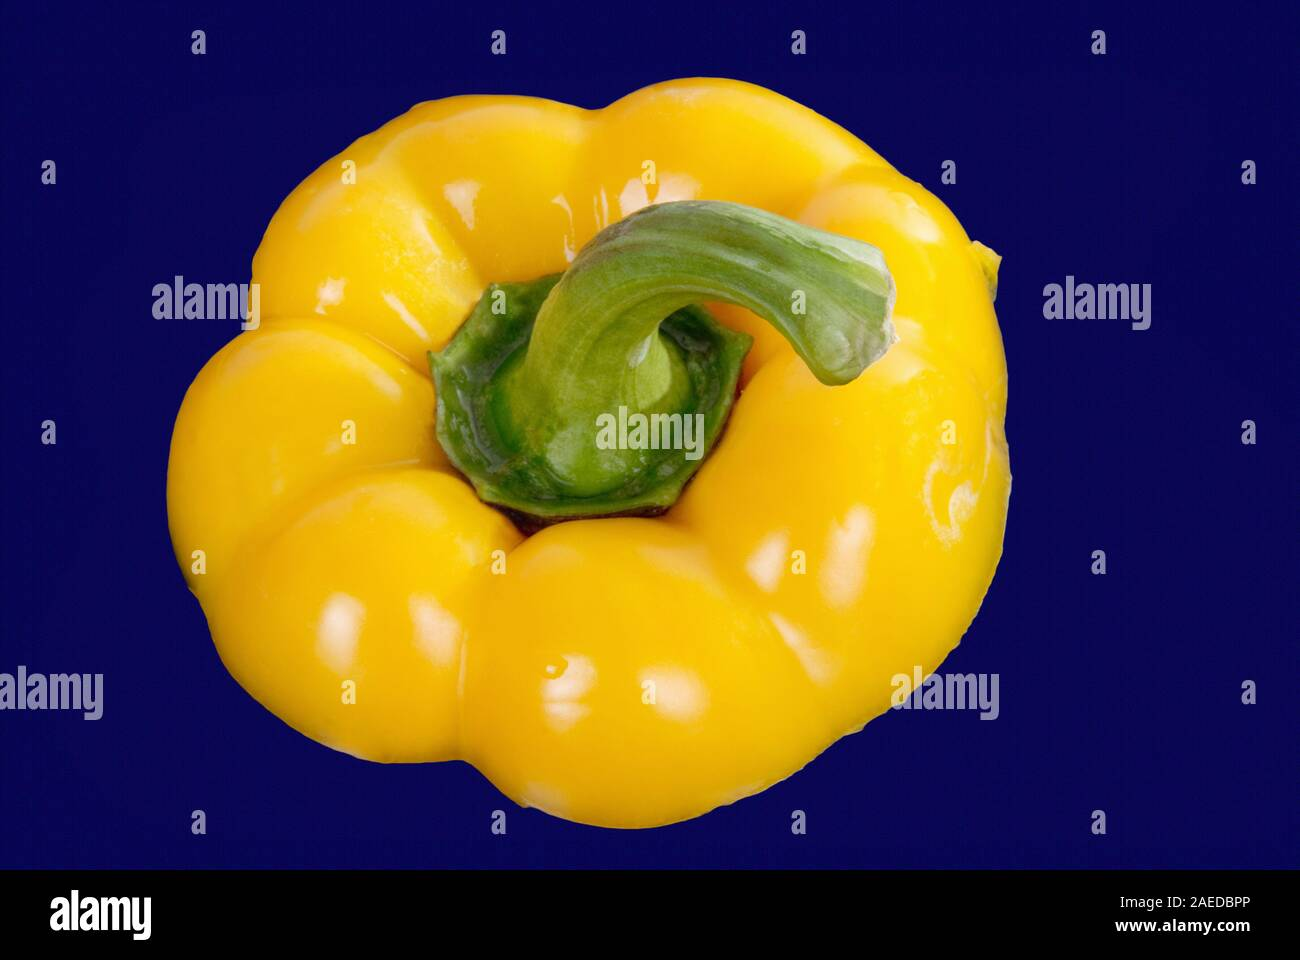 Directly above a fresh yellow bell pepper with the green colored stem on a dark blue background. Stock Photo